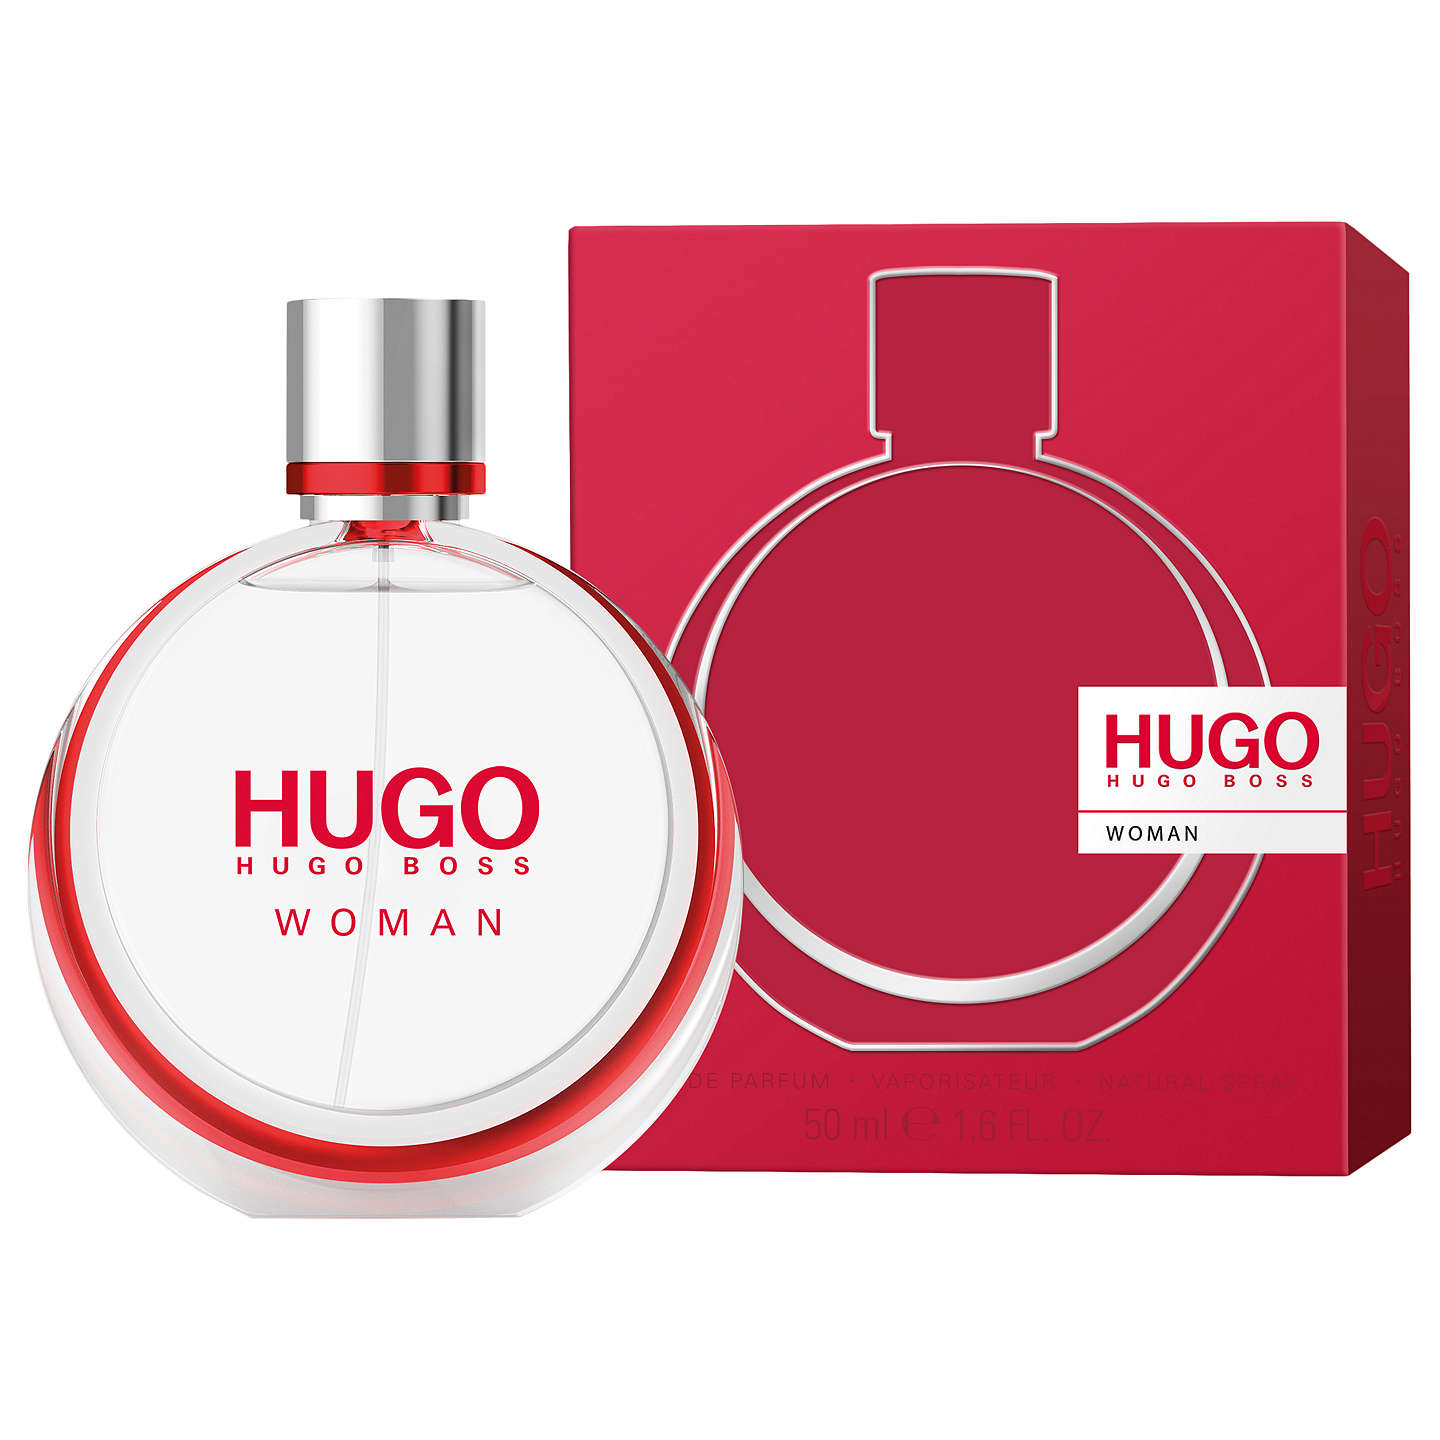 BuyHUGO BOSS HUGO Woman Eau de Parfum, 30ml Online at johnlewis.com